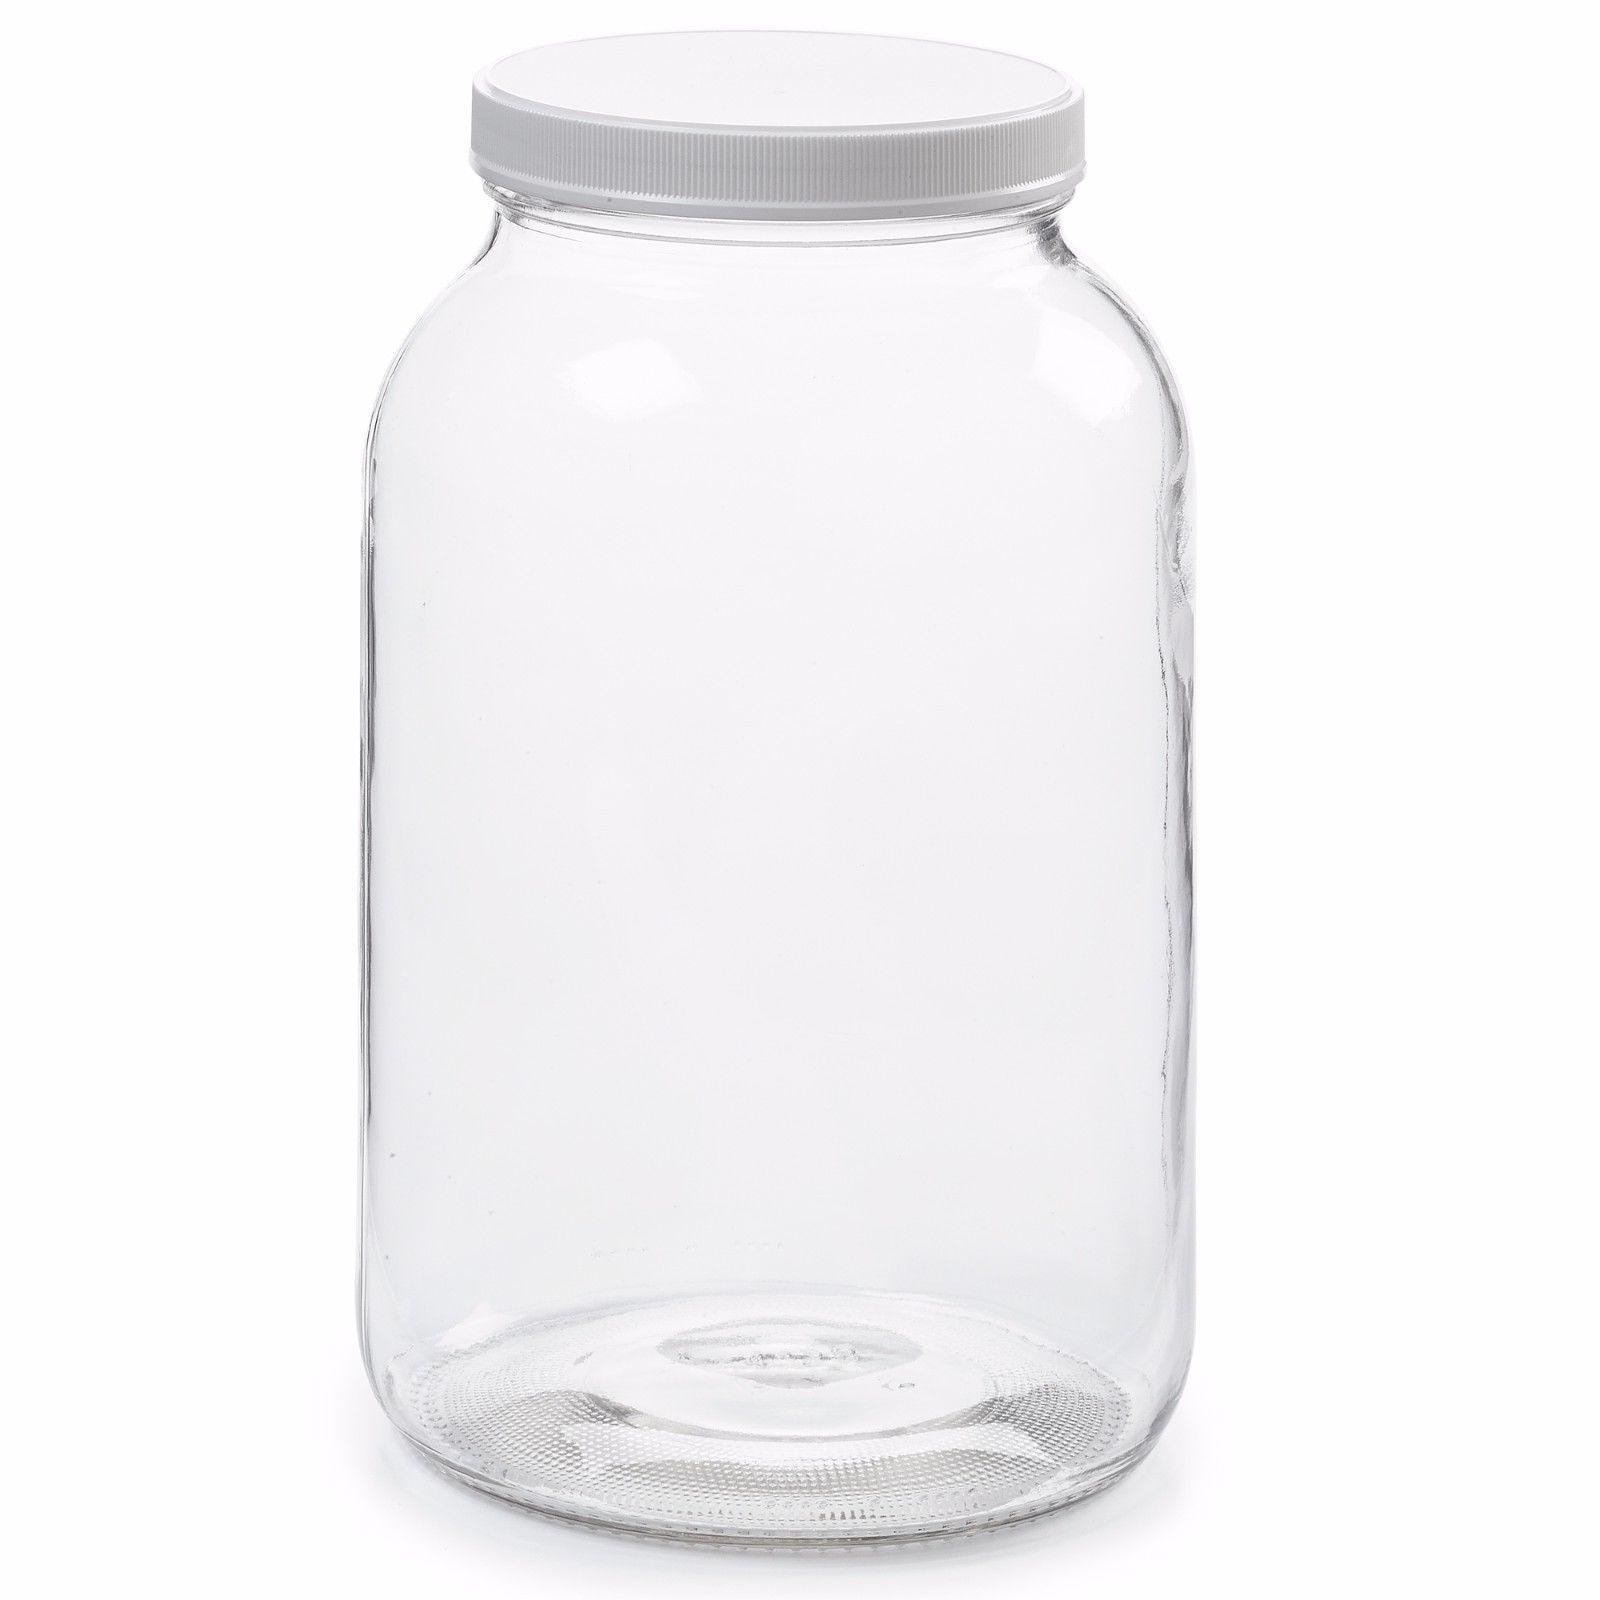 1 w/ Airtight Lid BPA Dishwasher Safe